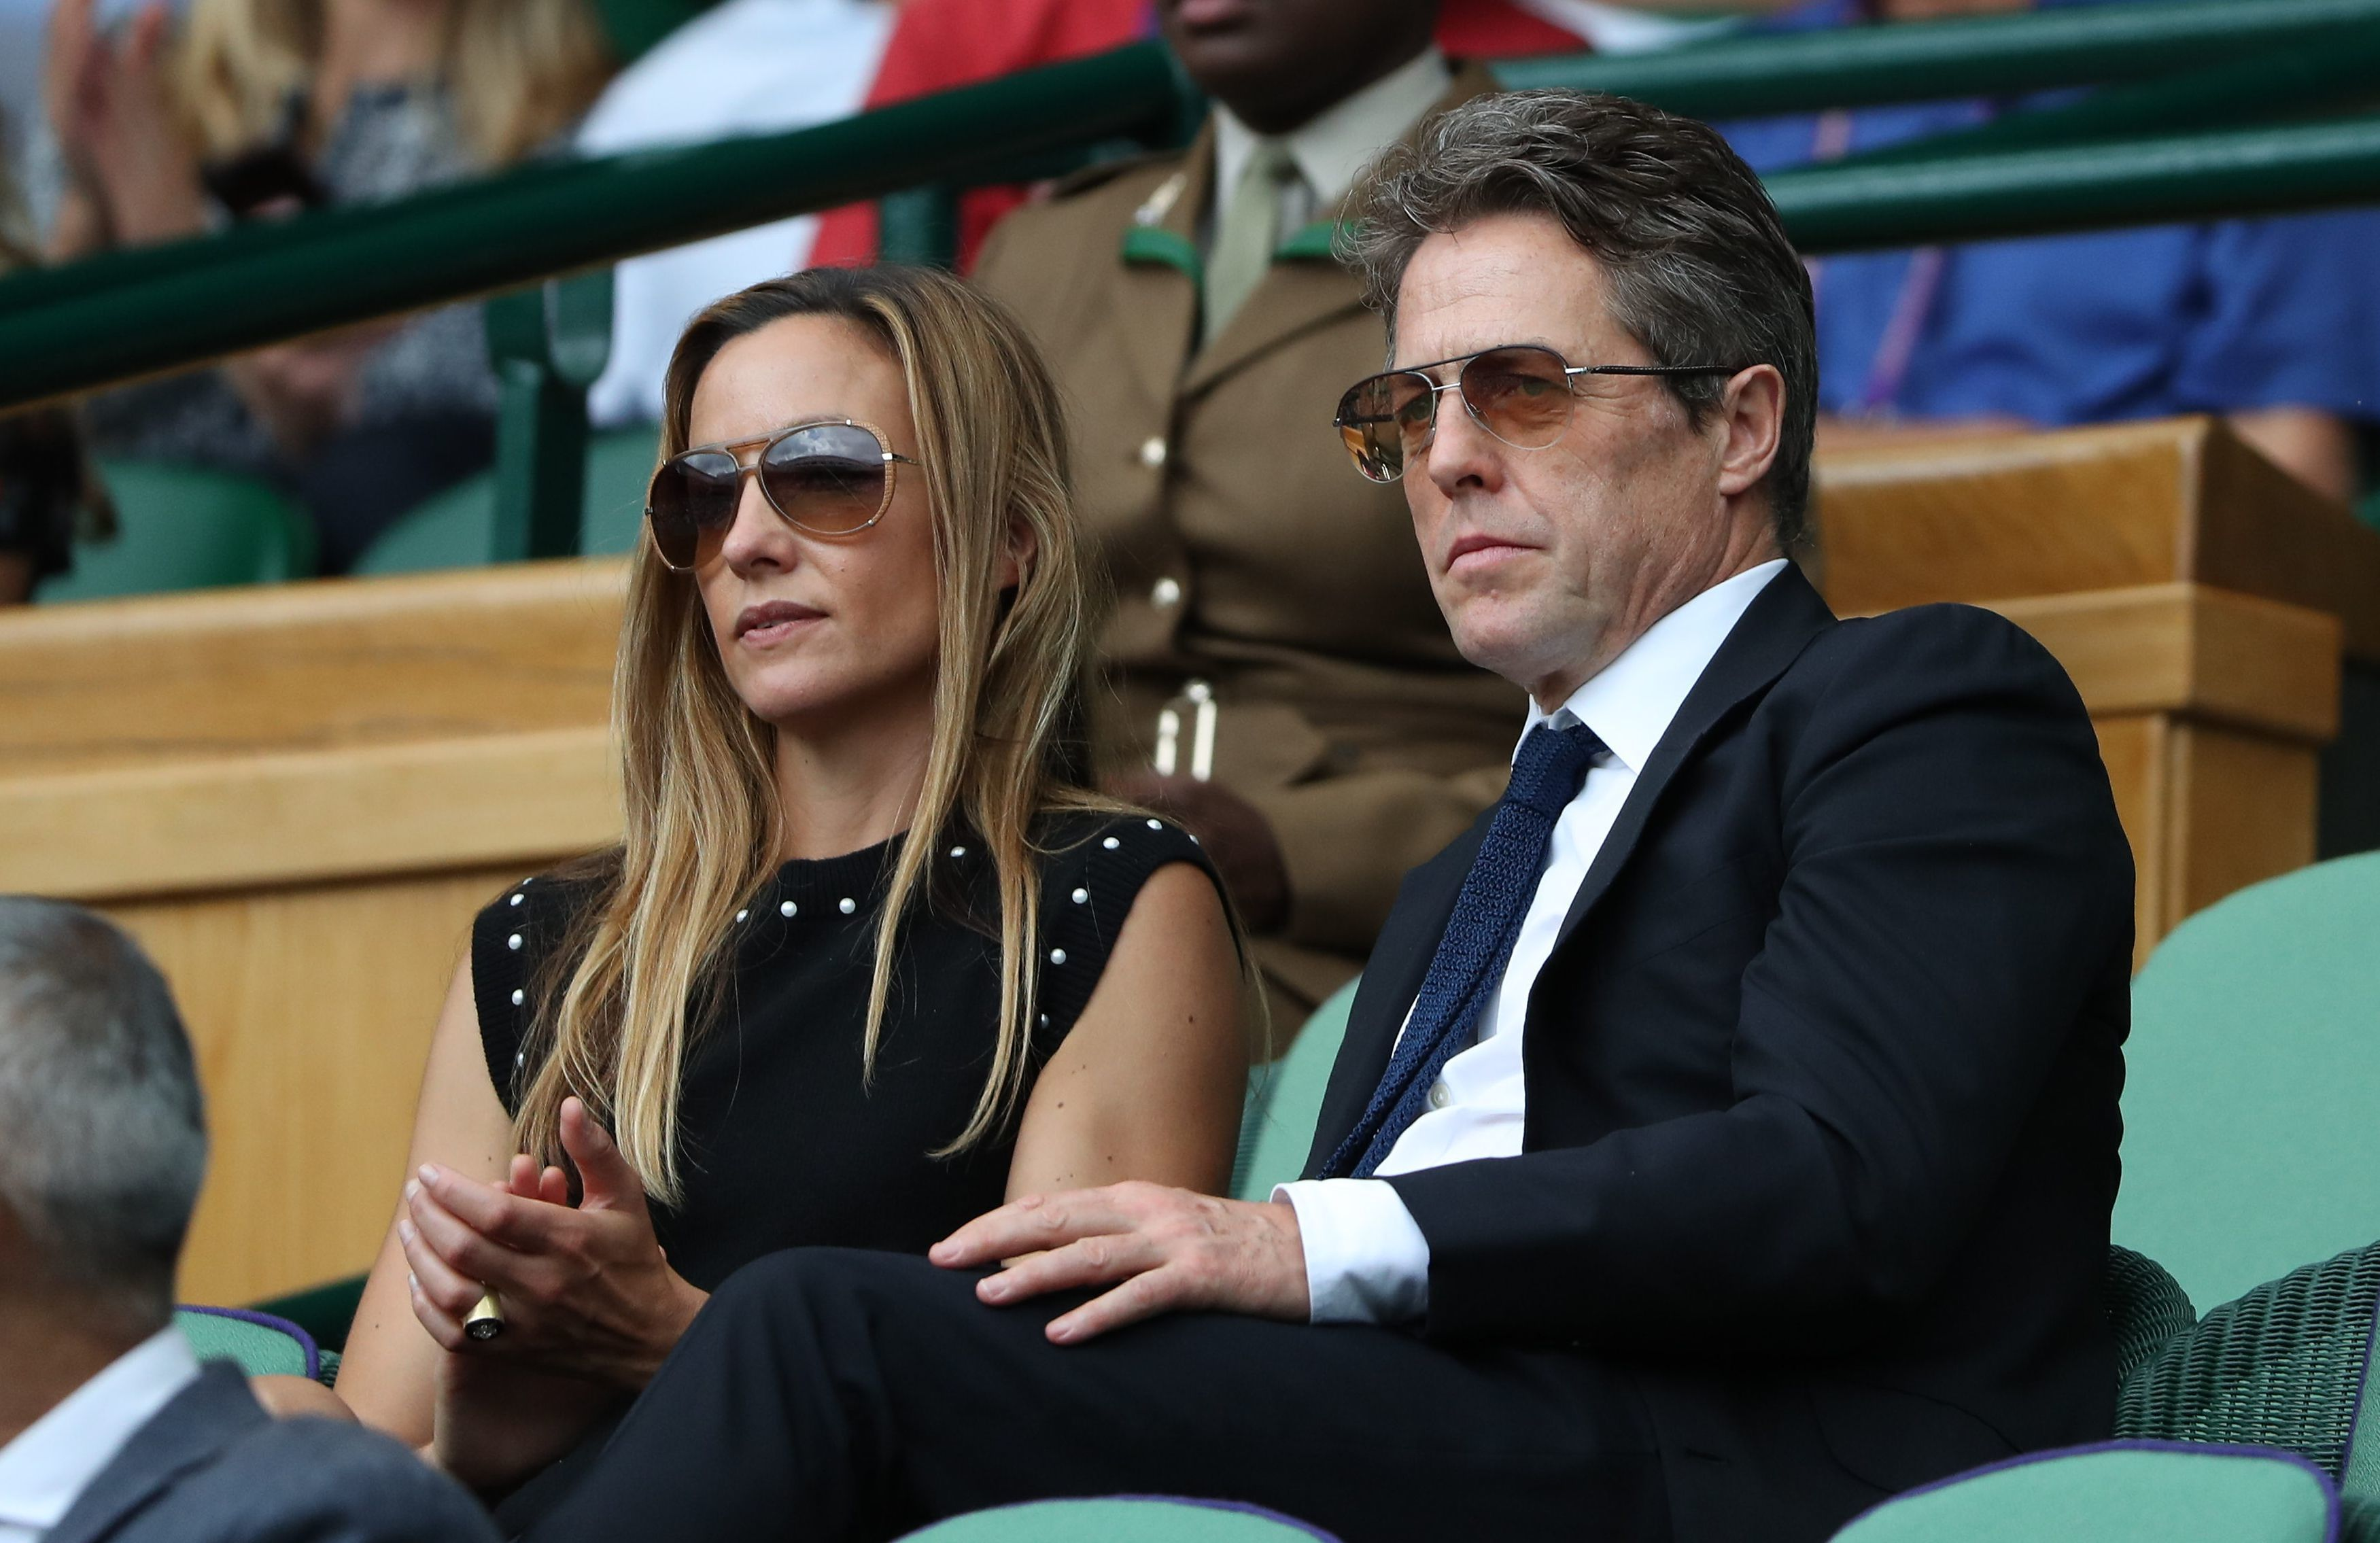 Hugh Grant and Anna Eberstein sit in the royal box on Day 13 of the Wimbledon Tennis Championships at the All England Lawn Tennis and Croquet Club in London on July 16, 2017.